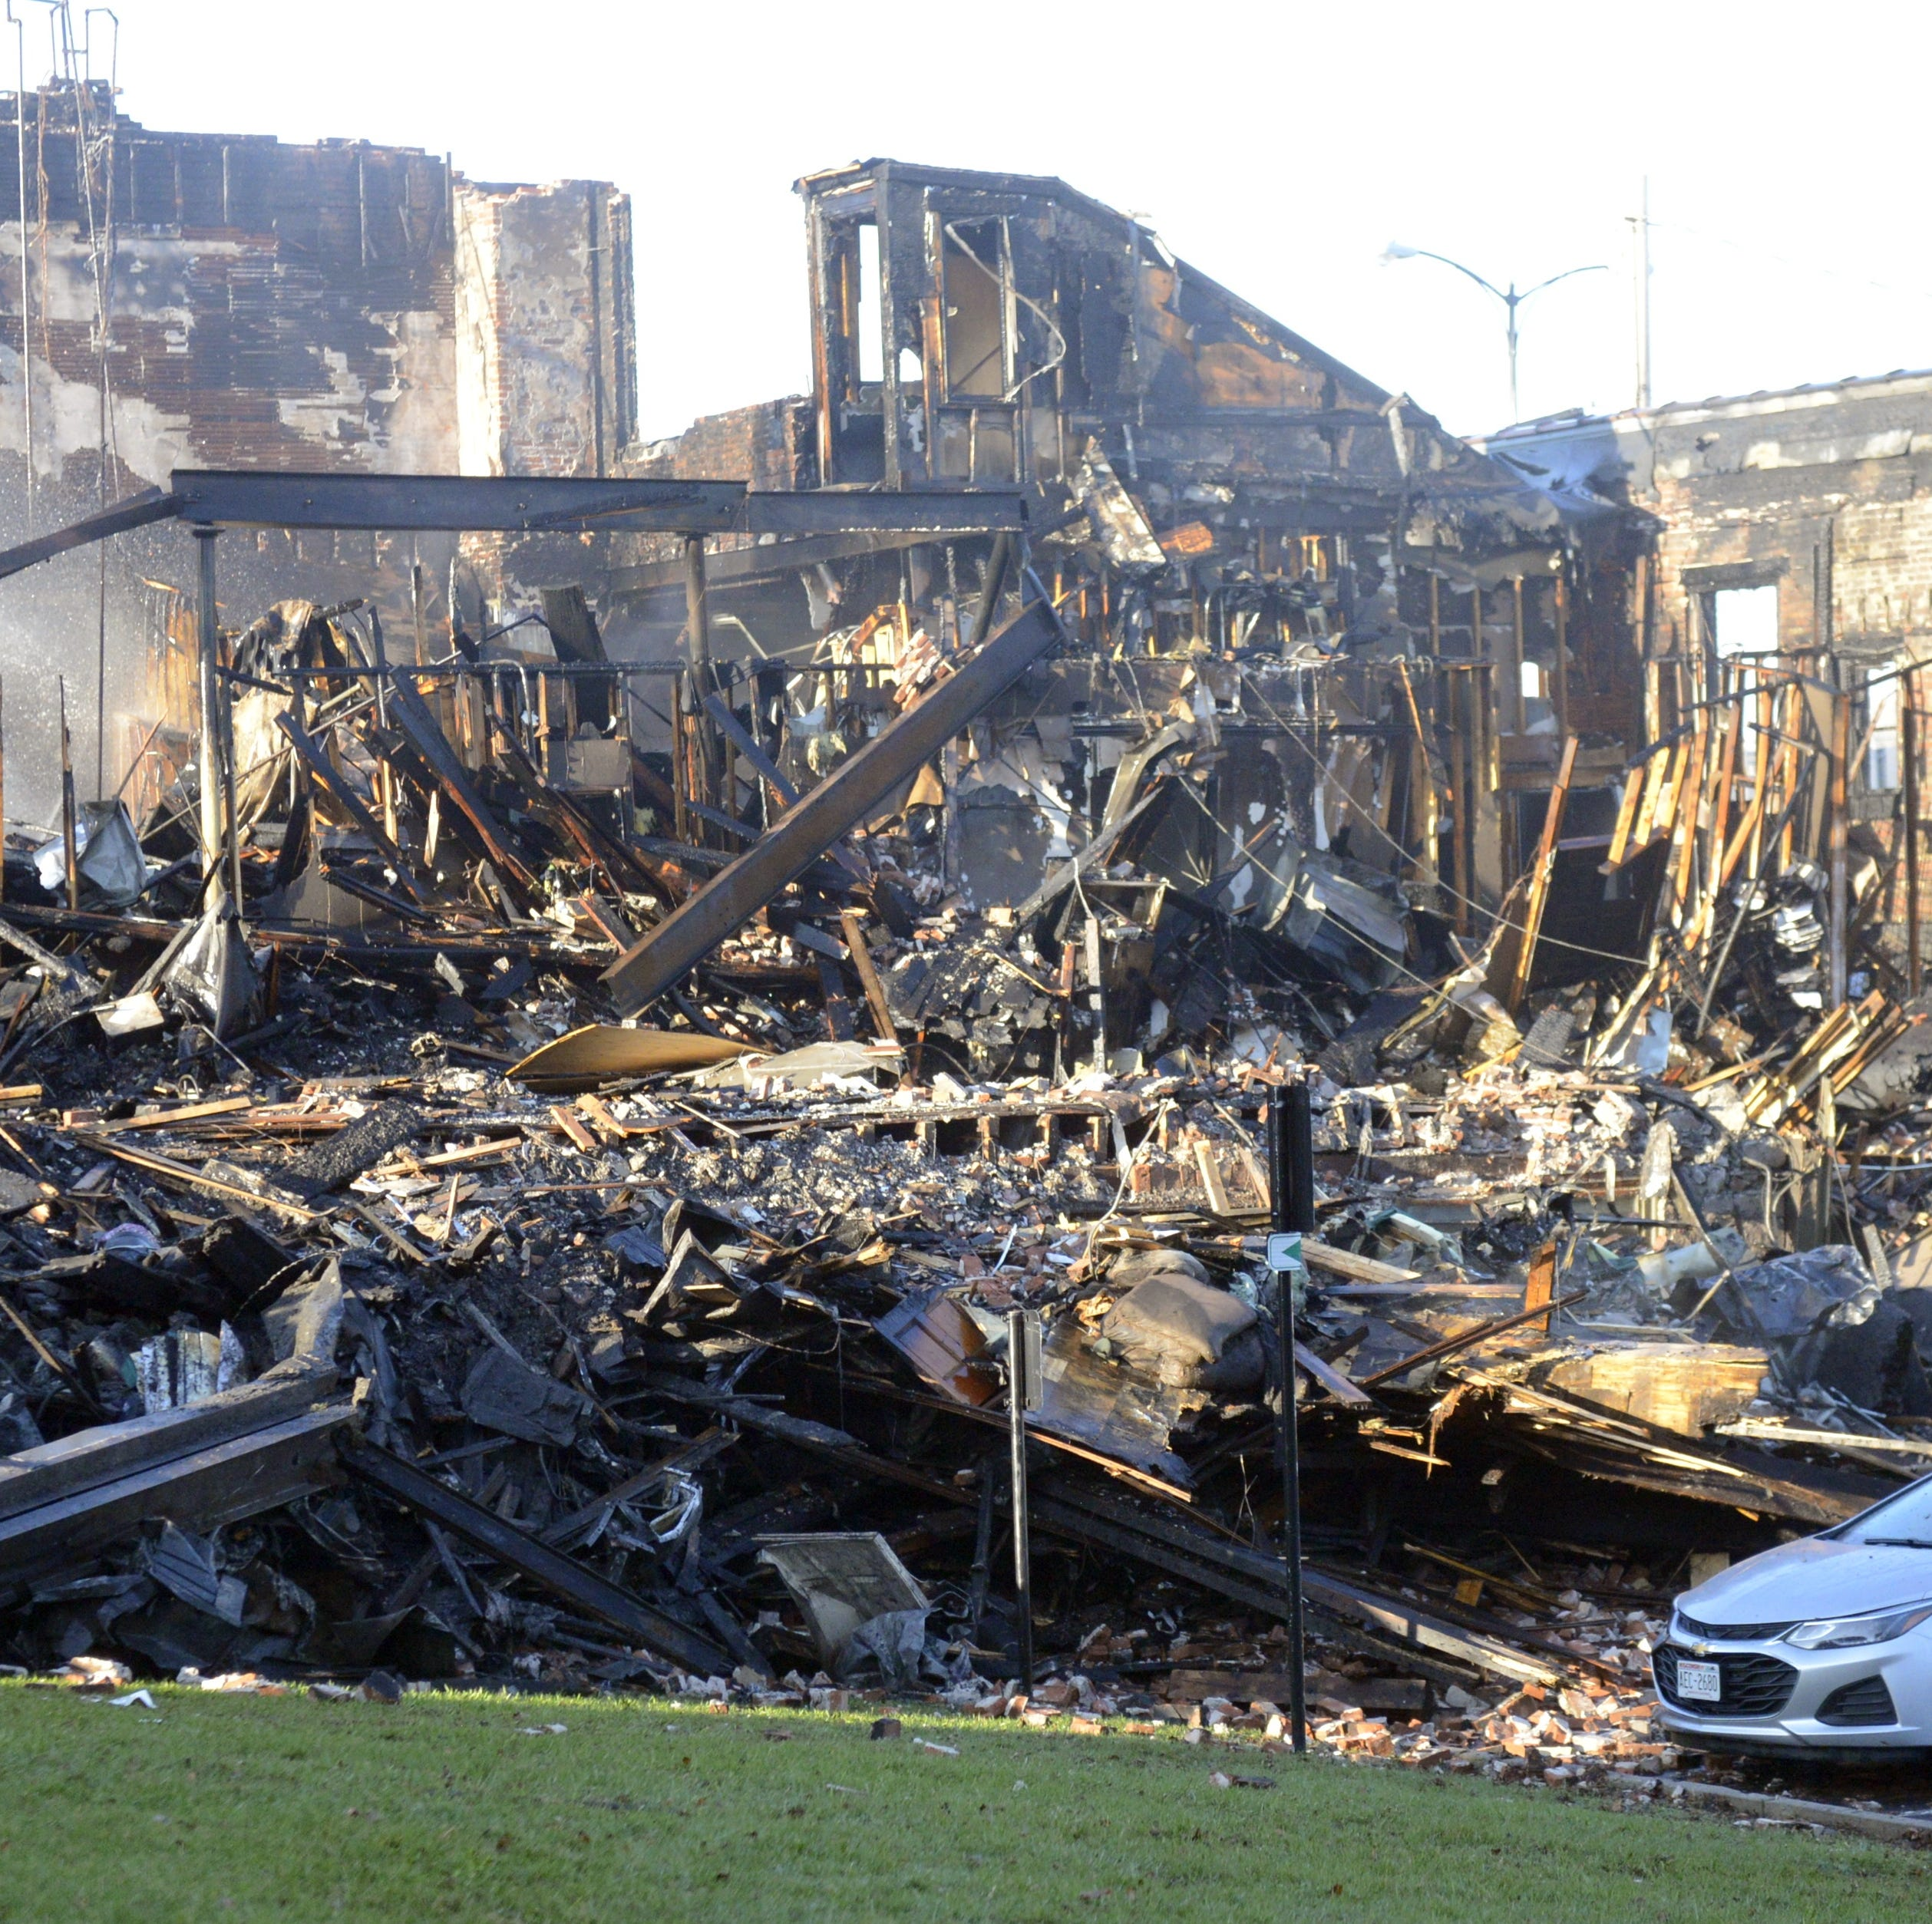 Fire destroys historic, downtown De Pere building, displaces more than 20 people